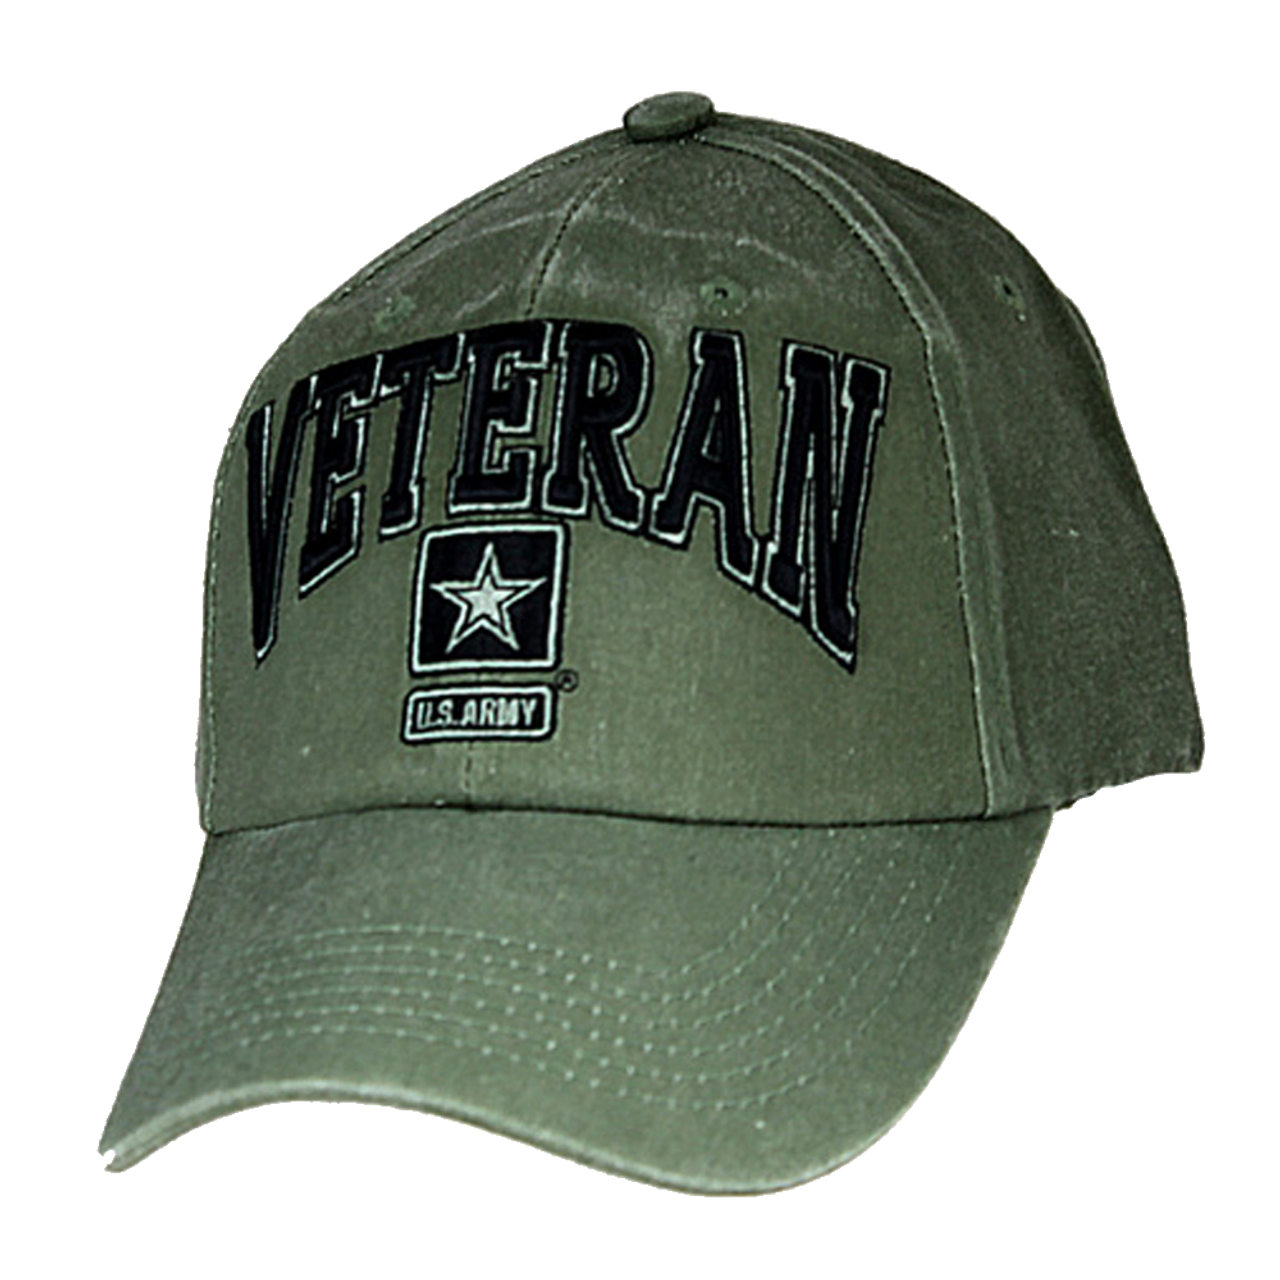 1f2cbcc549a Eagle Crest 6491 - Army Veteran Cap - Star Logo - Cotton - OD Green